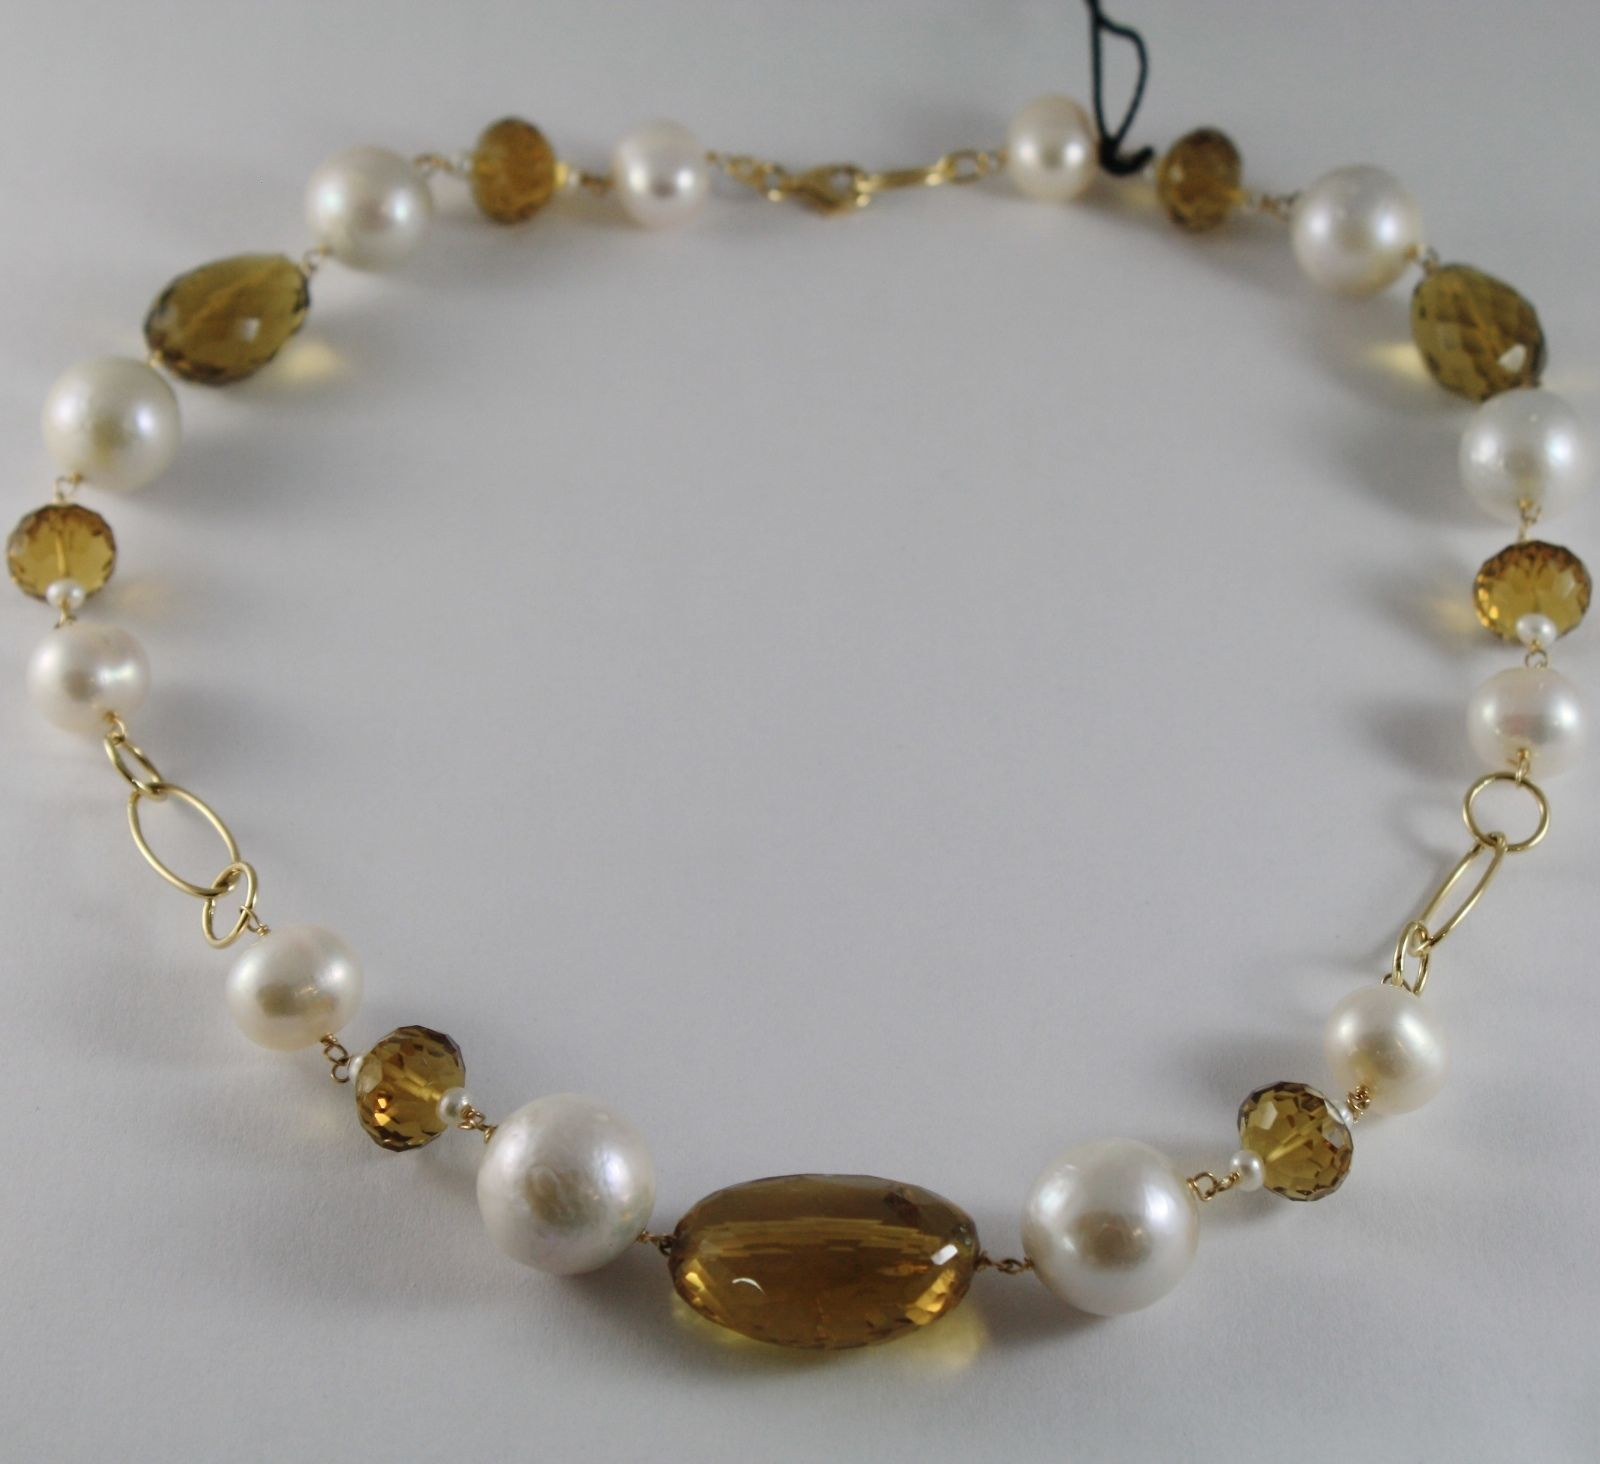 18K YELLOW GOLD NECKLACE BIG WHITE PEARLS & CUSHION BEER BROWN QUARTZ ITALY MADE